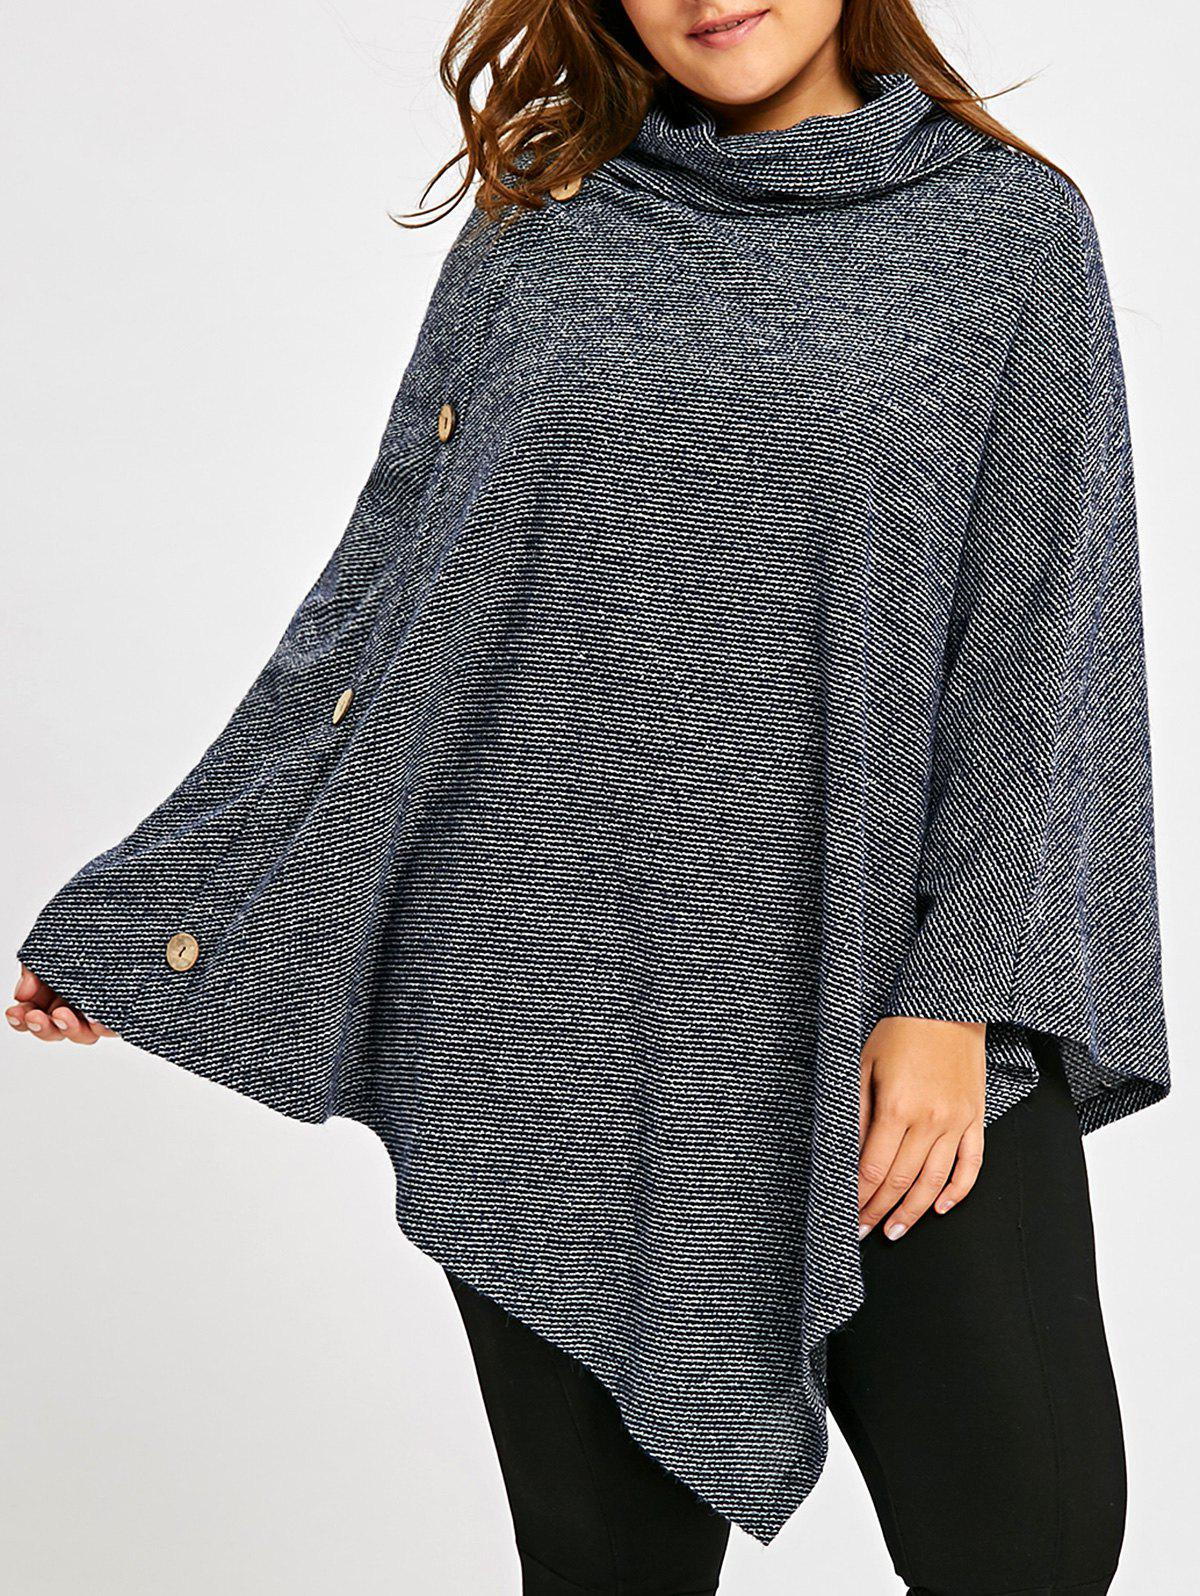 Plus Size Cowl Neck Poncho TopWOMEN<br><br>Size: 2XL; Color: BLUE GRAY; Type: Pullovers; Material: Polyester; Sleeve Length: Full; Collar: Cowl Neck; Style: Casual; Season: Fall,Spring; Pattern Type: Solid; Weight: 0.4700kg; Package Contents: 1 x Top;